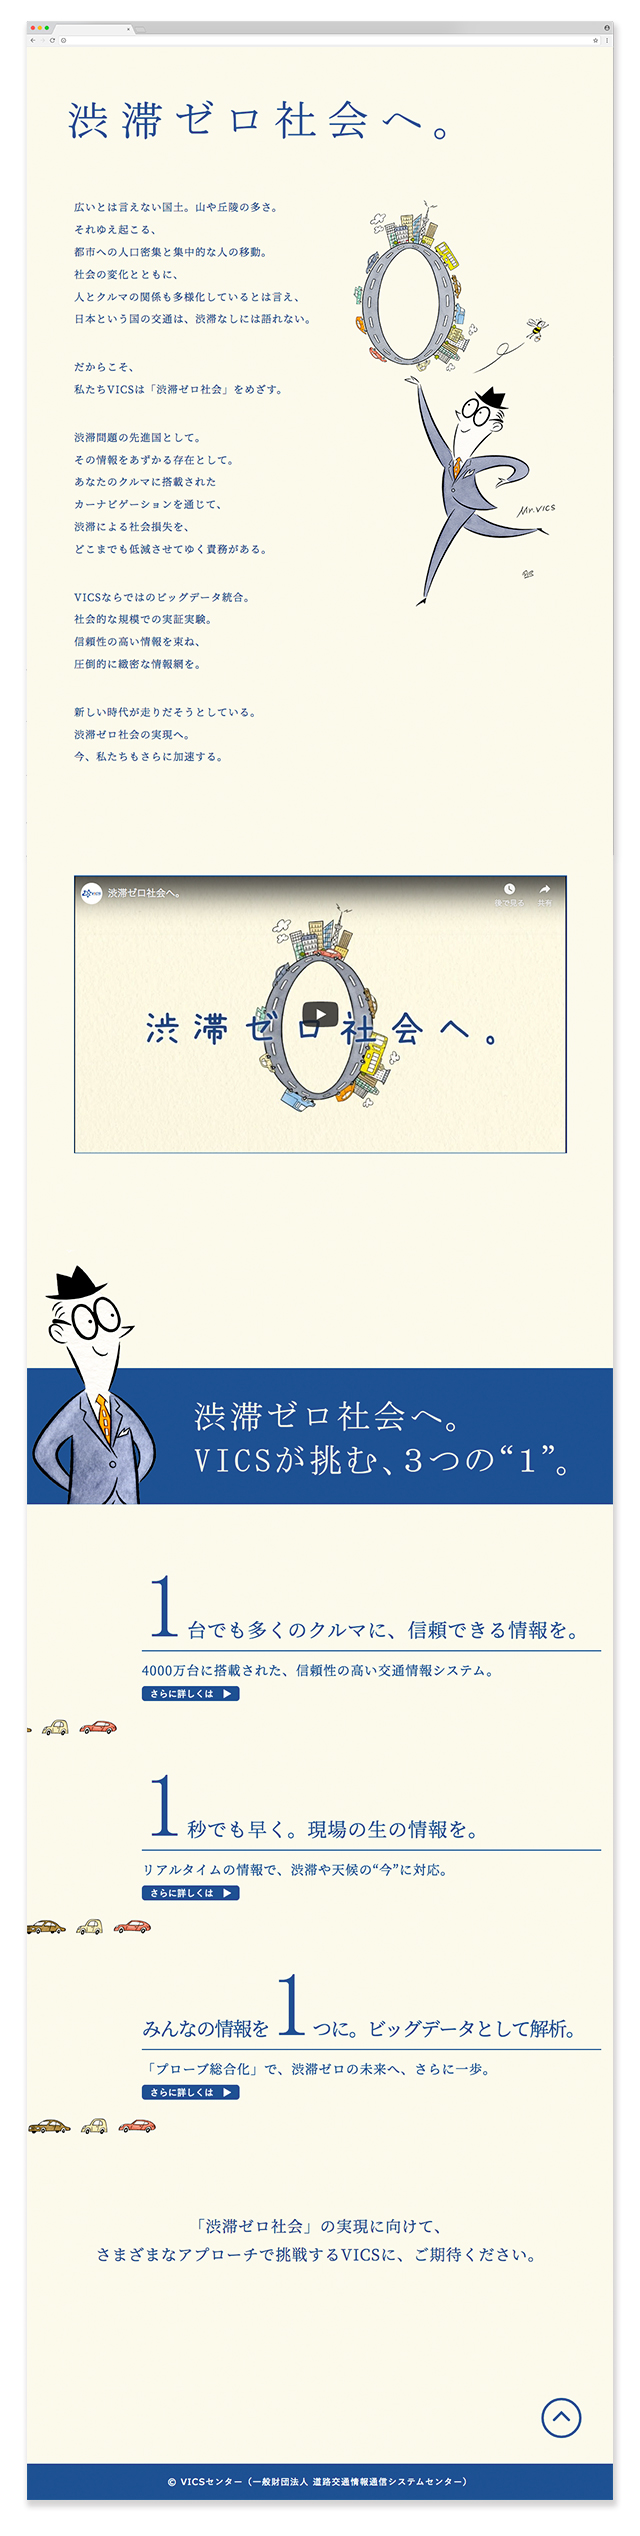 browser_w640_vics